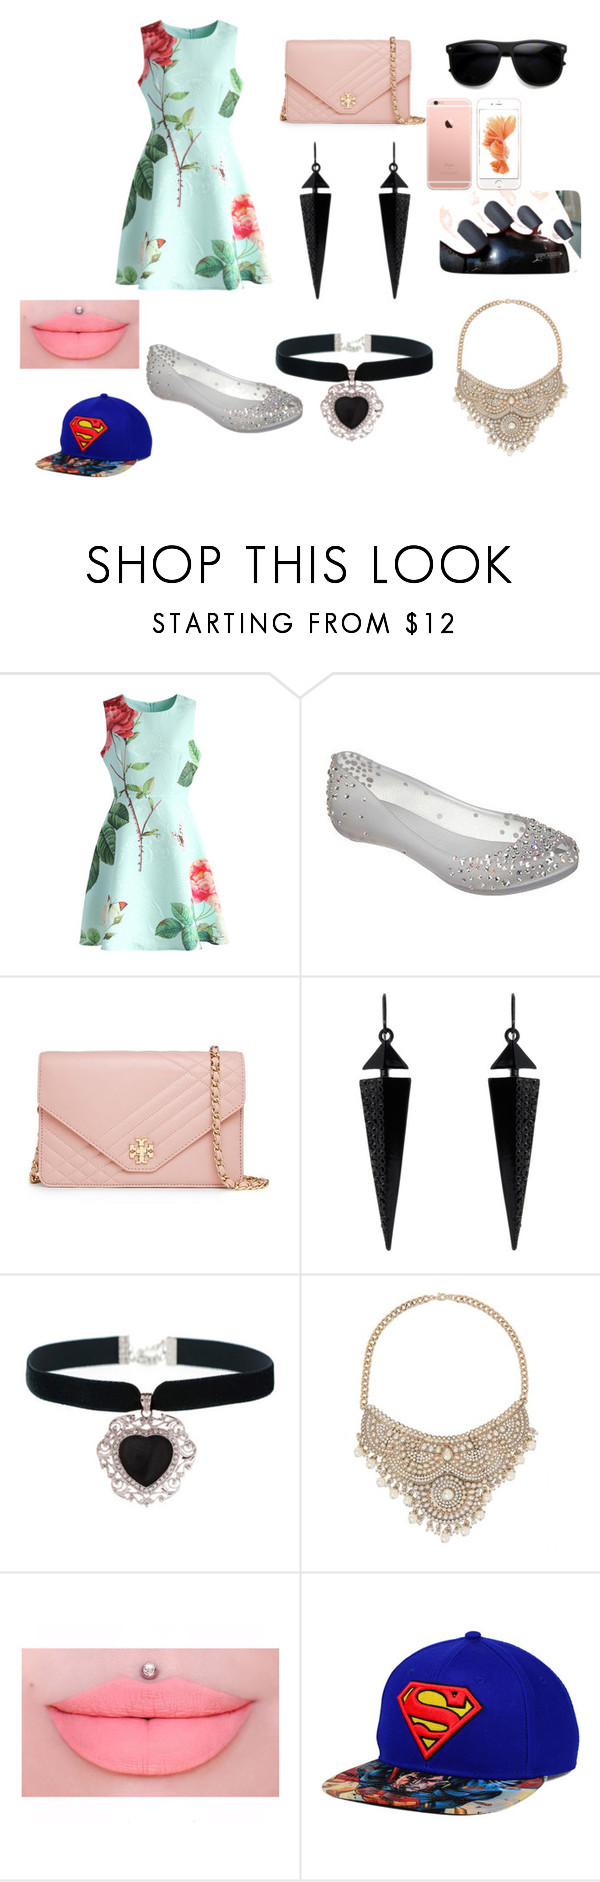 """barborka <3"" by hugyarova-barborka on Polyvore featuring beauty, Chicwish, Melissa, Tory Burch, Oasis, Rock 'N Rose and Bebe"